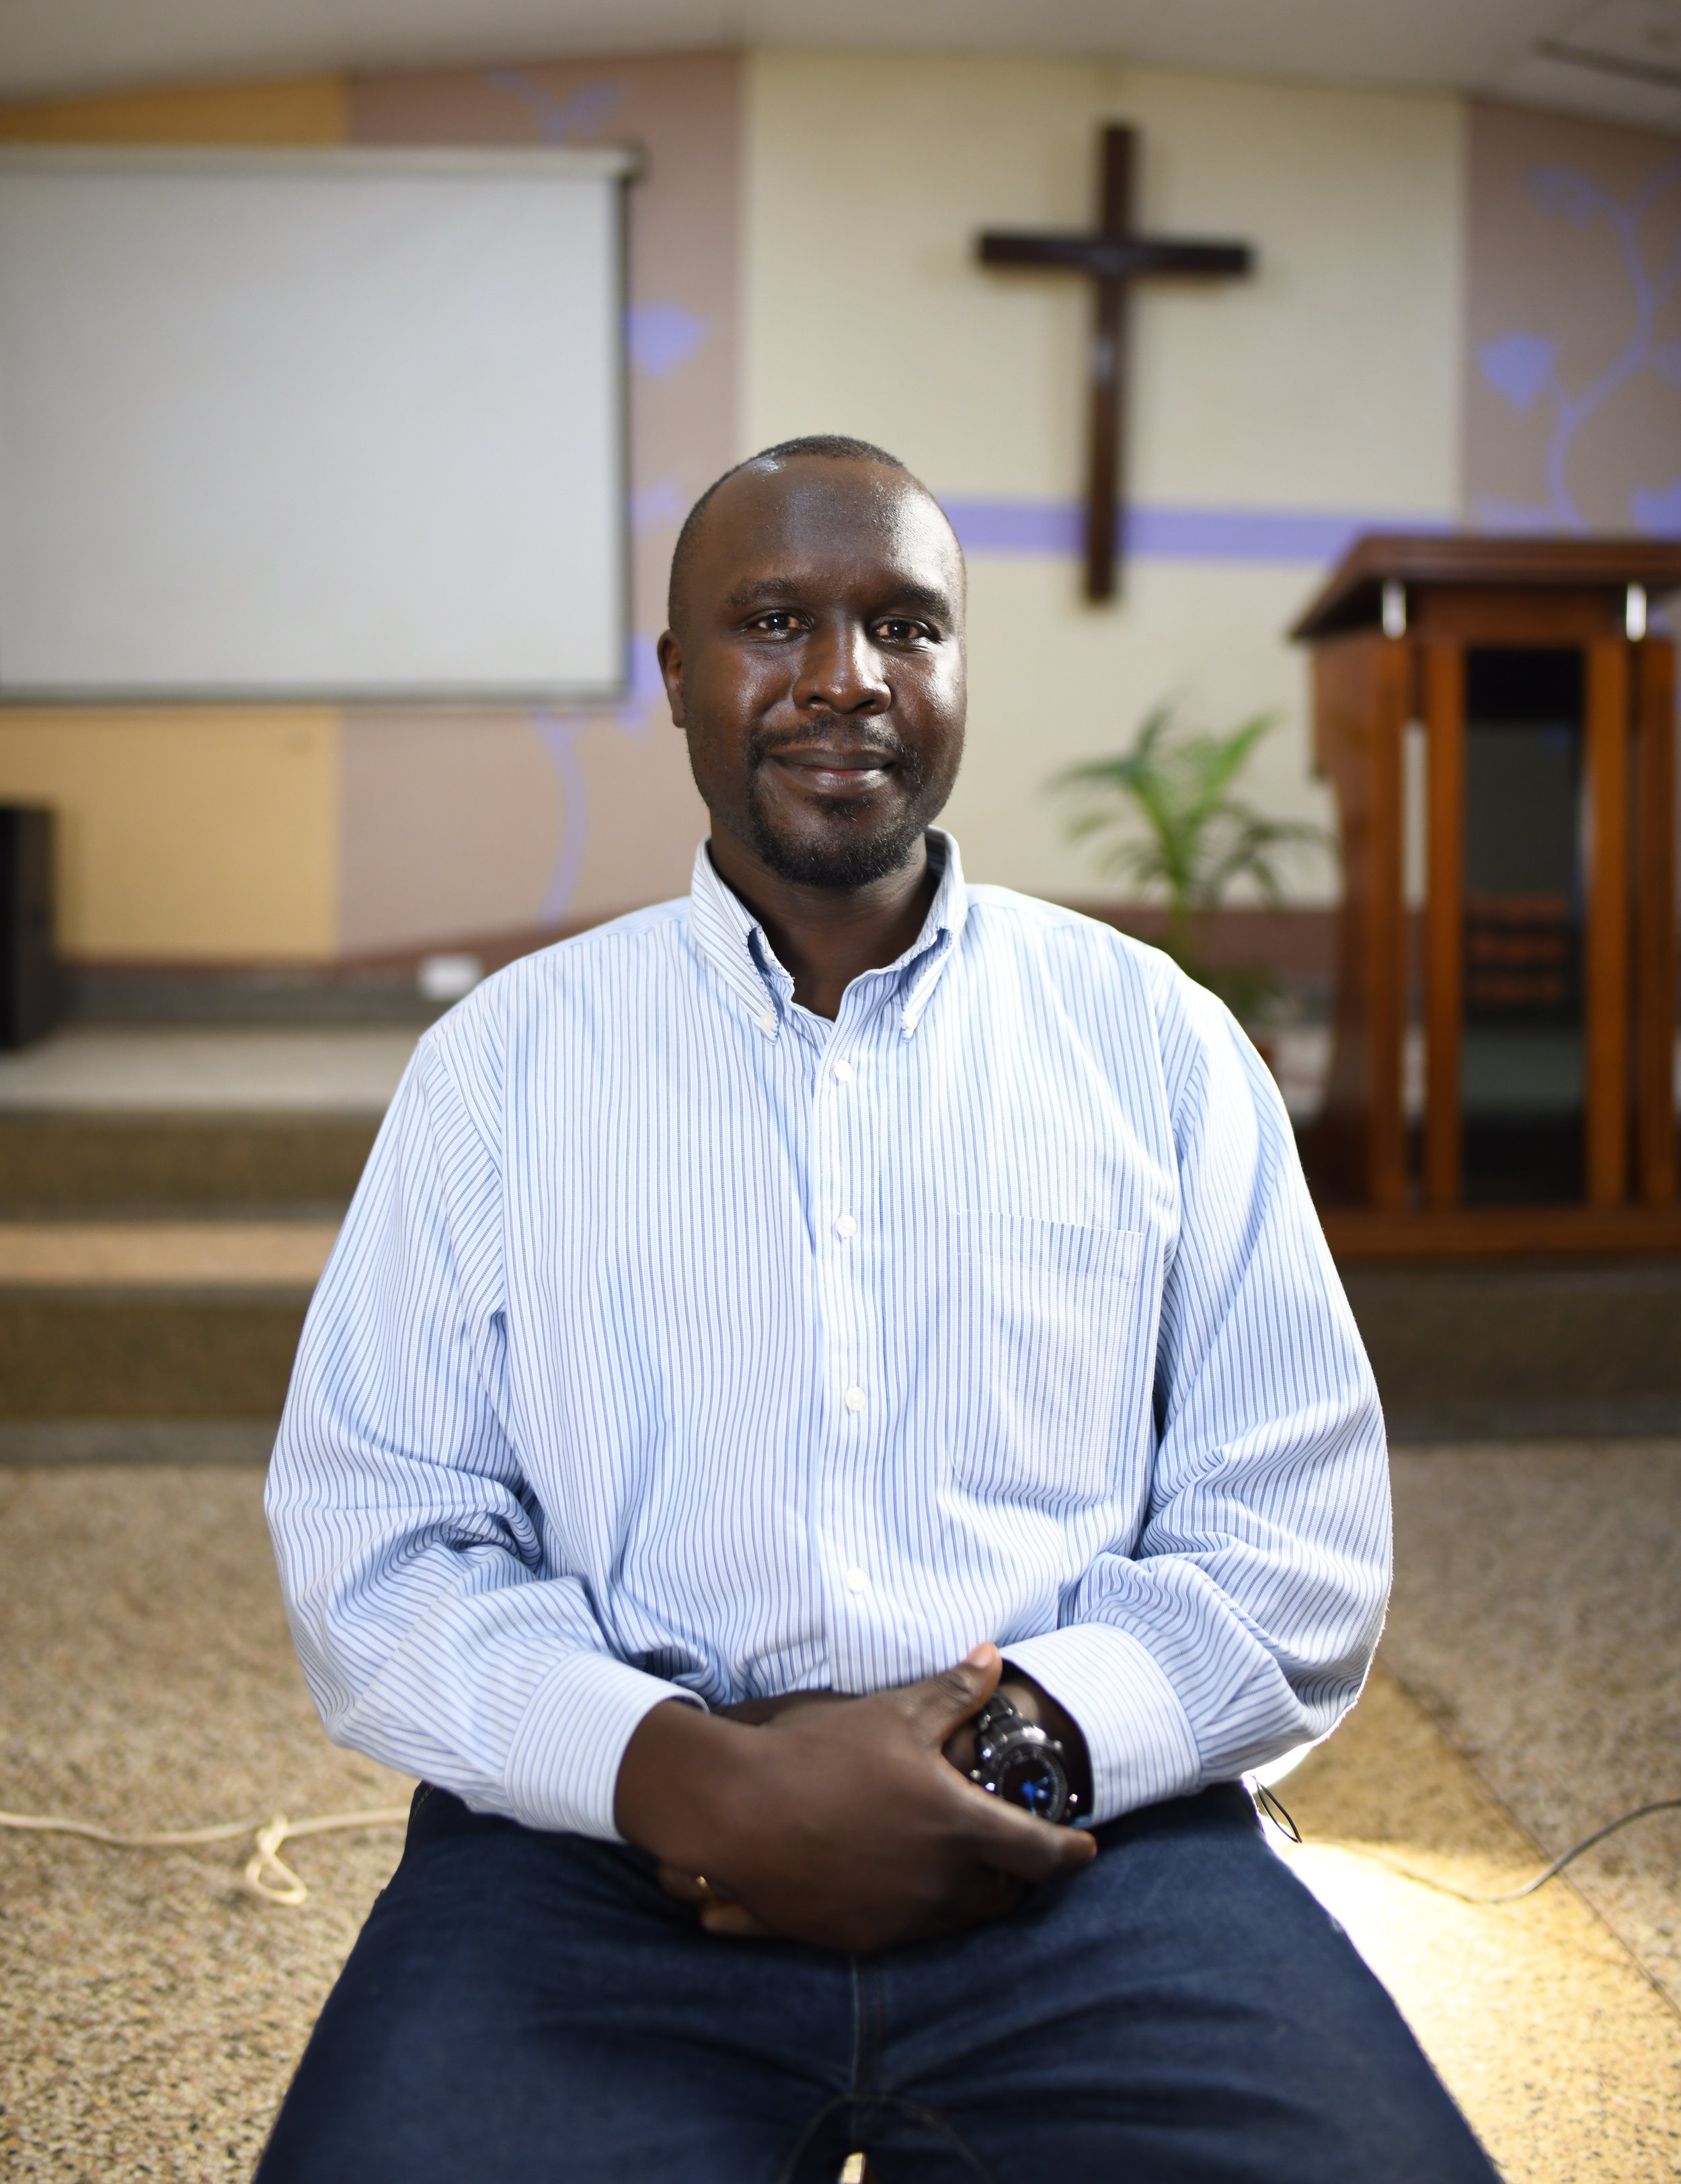 Dennis Kilama - Kampala, UgandaDennis Kilama is my name, I am married to Yvonne Nabwire Kilama. God has blessed us with two children. Kimara (7 years) and Kigen (4 years). We have been married for the past 10 years.My call to ministry was one step at a time, one day at a time. First as a Social Work student at Makerere University, then later as a seminary student at Nairobi Evangelical School of Theology and a call to ordination in the Baptist Church.For the past eight years, I have served as the Pastor of Lugogo Baptist Church, a church in the city of Kampala. Kampala is a fast growing city with great opportunities for planting bible believing, bible teaching churches. As a local church family we are involved in several church planting initiatives and are currently in the midst of planting a church in an area with a fast growing population sandwiched between the two largest Muslim communities around the city.